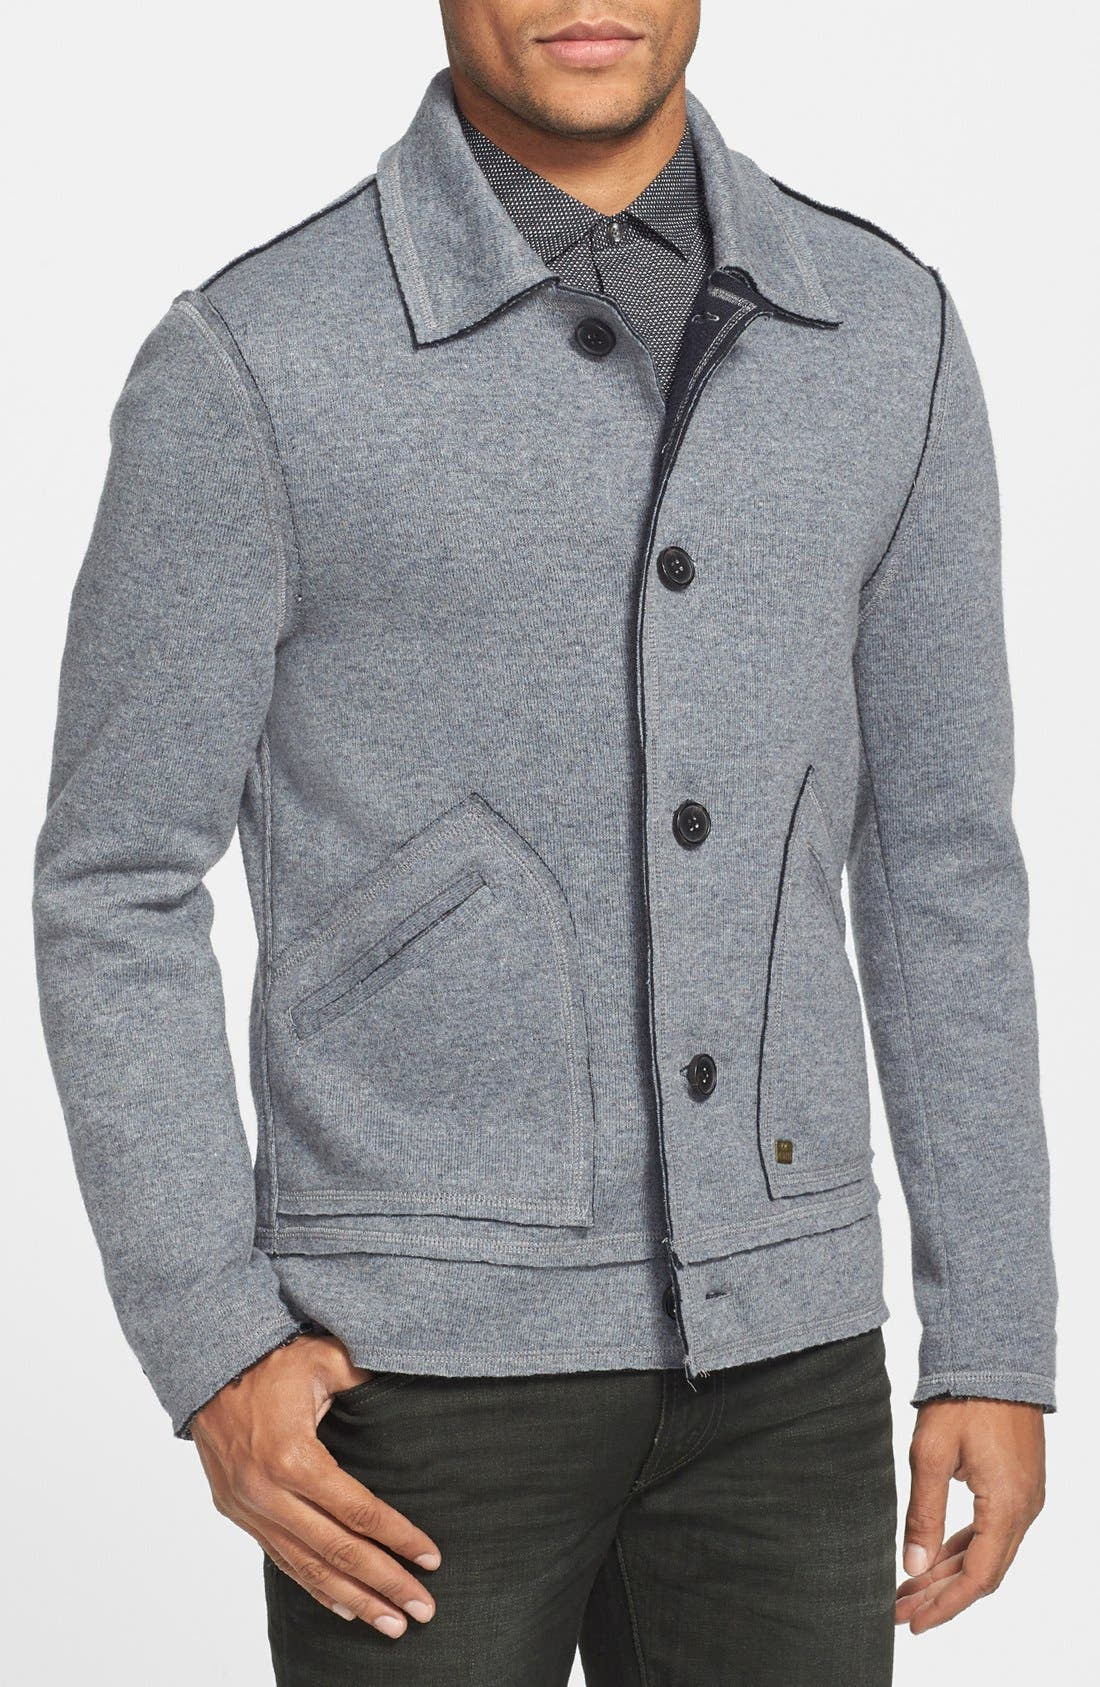 Main Image - Antony Morato Wool Blend Jacket